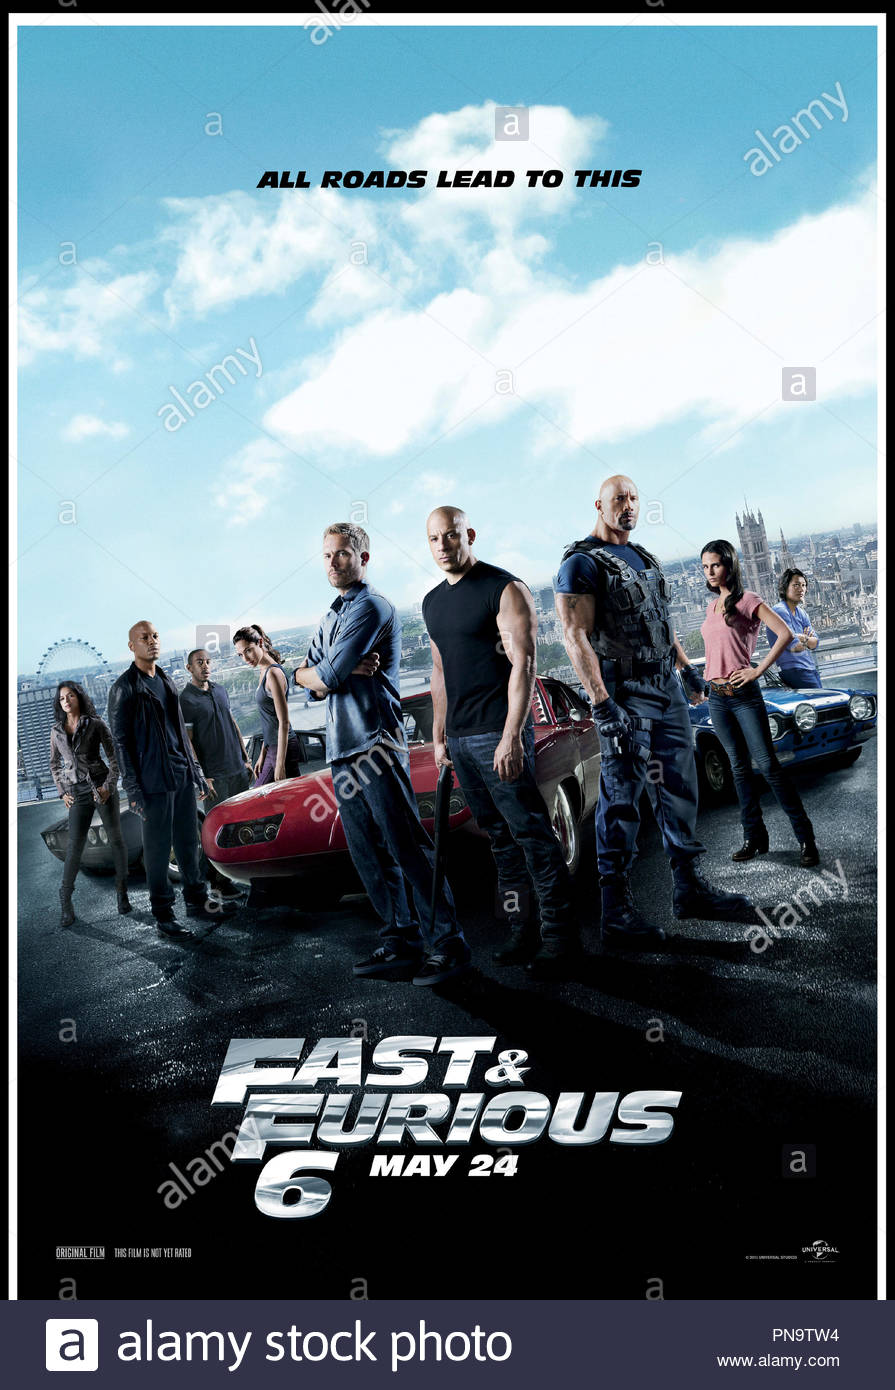 prod db universal pictures original film dr fast furious 6 fast and furious 6 de justin lin 2013 usa affiche americaine suite sequelle action PN9TW4